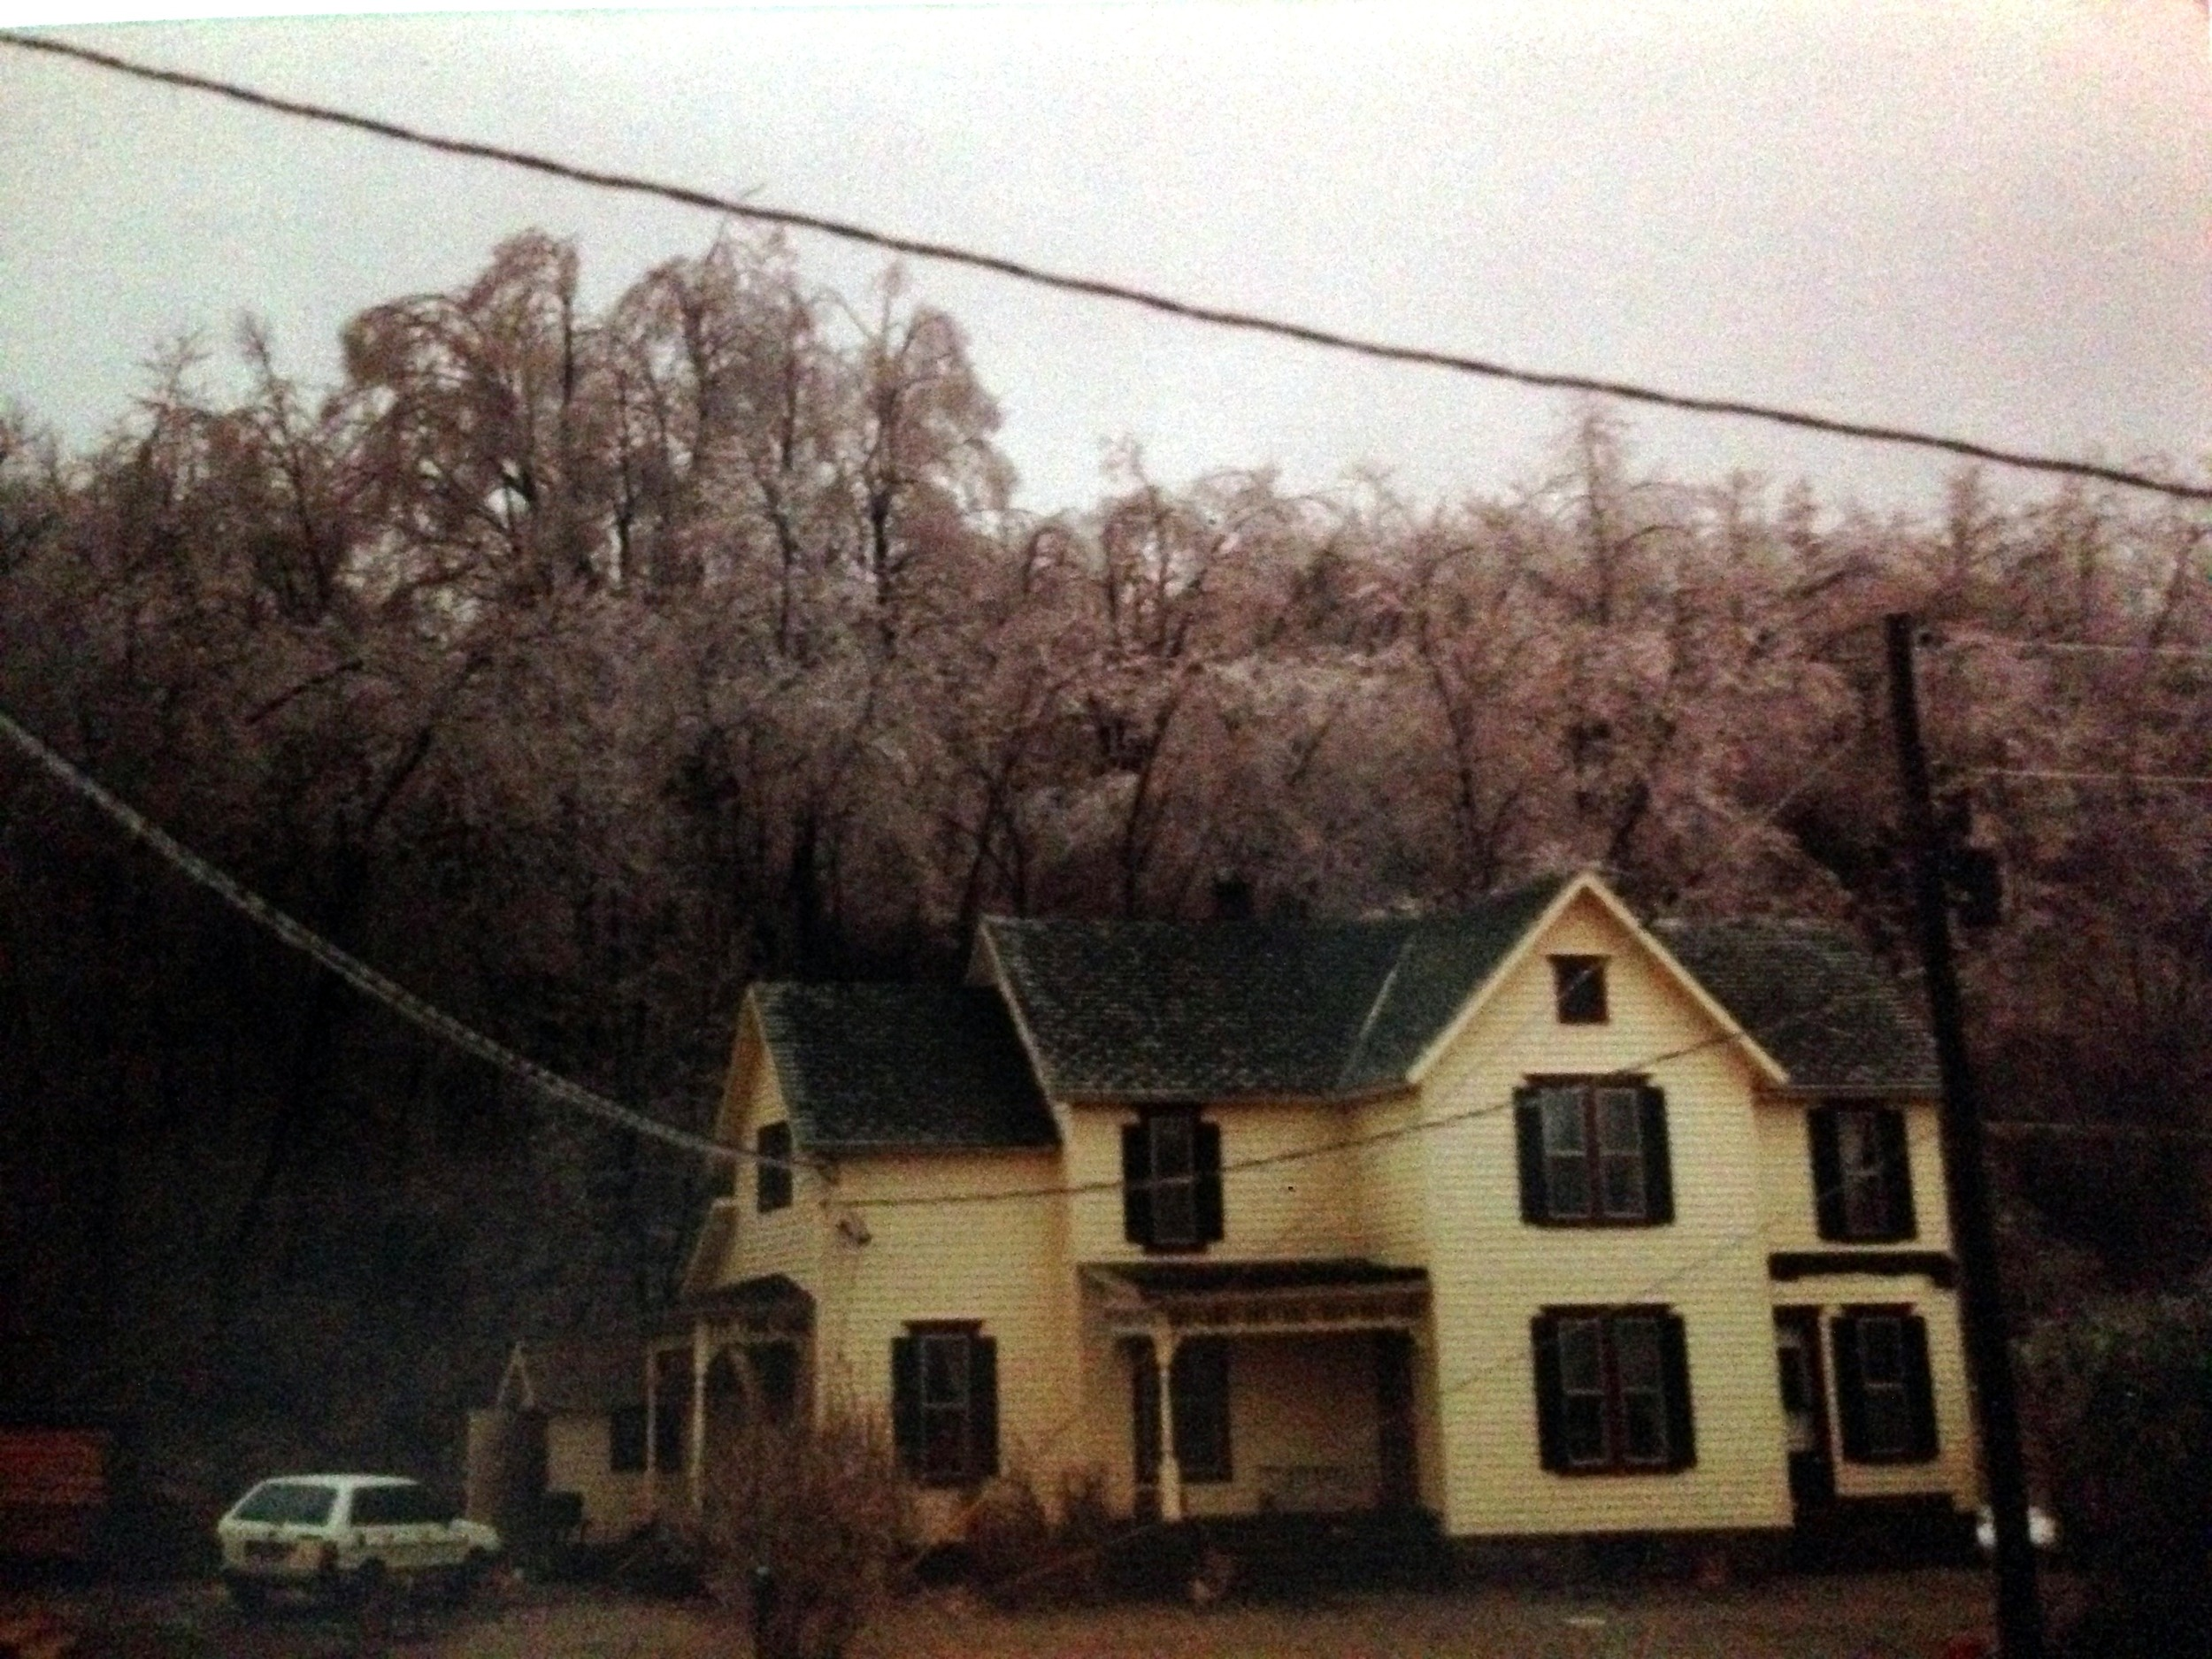 This is my parents house, and if you look closely, you will see that every tree and power line is covered in a thick coat of ice.